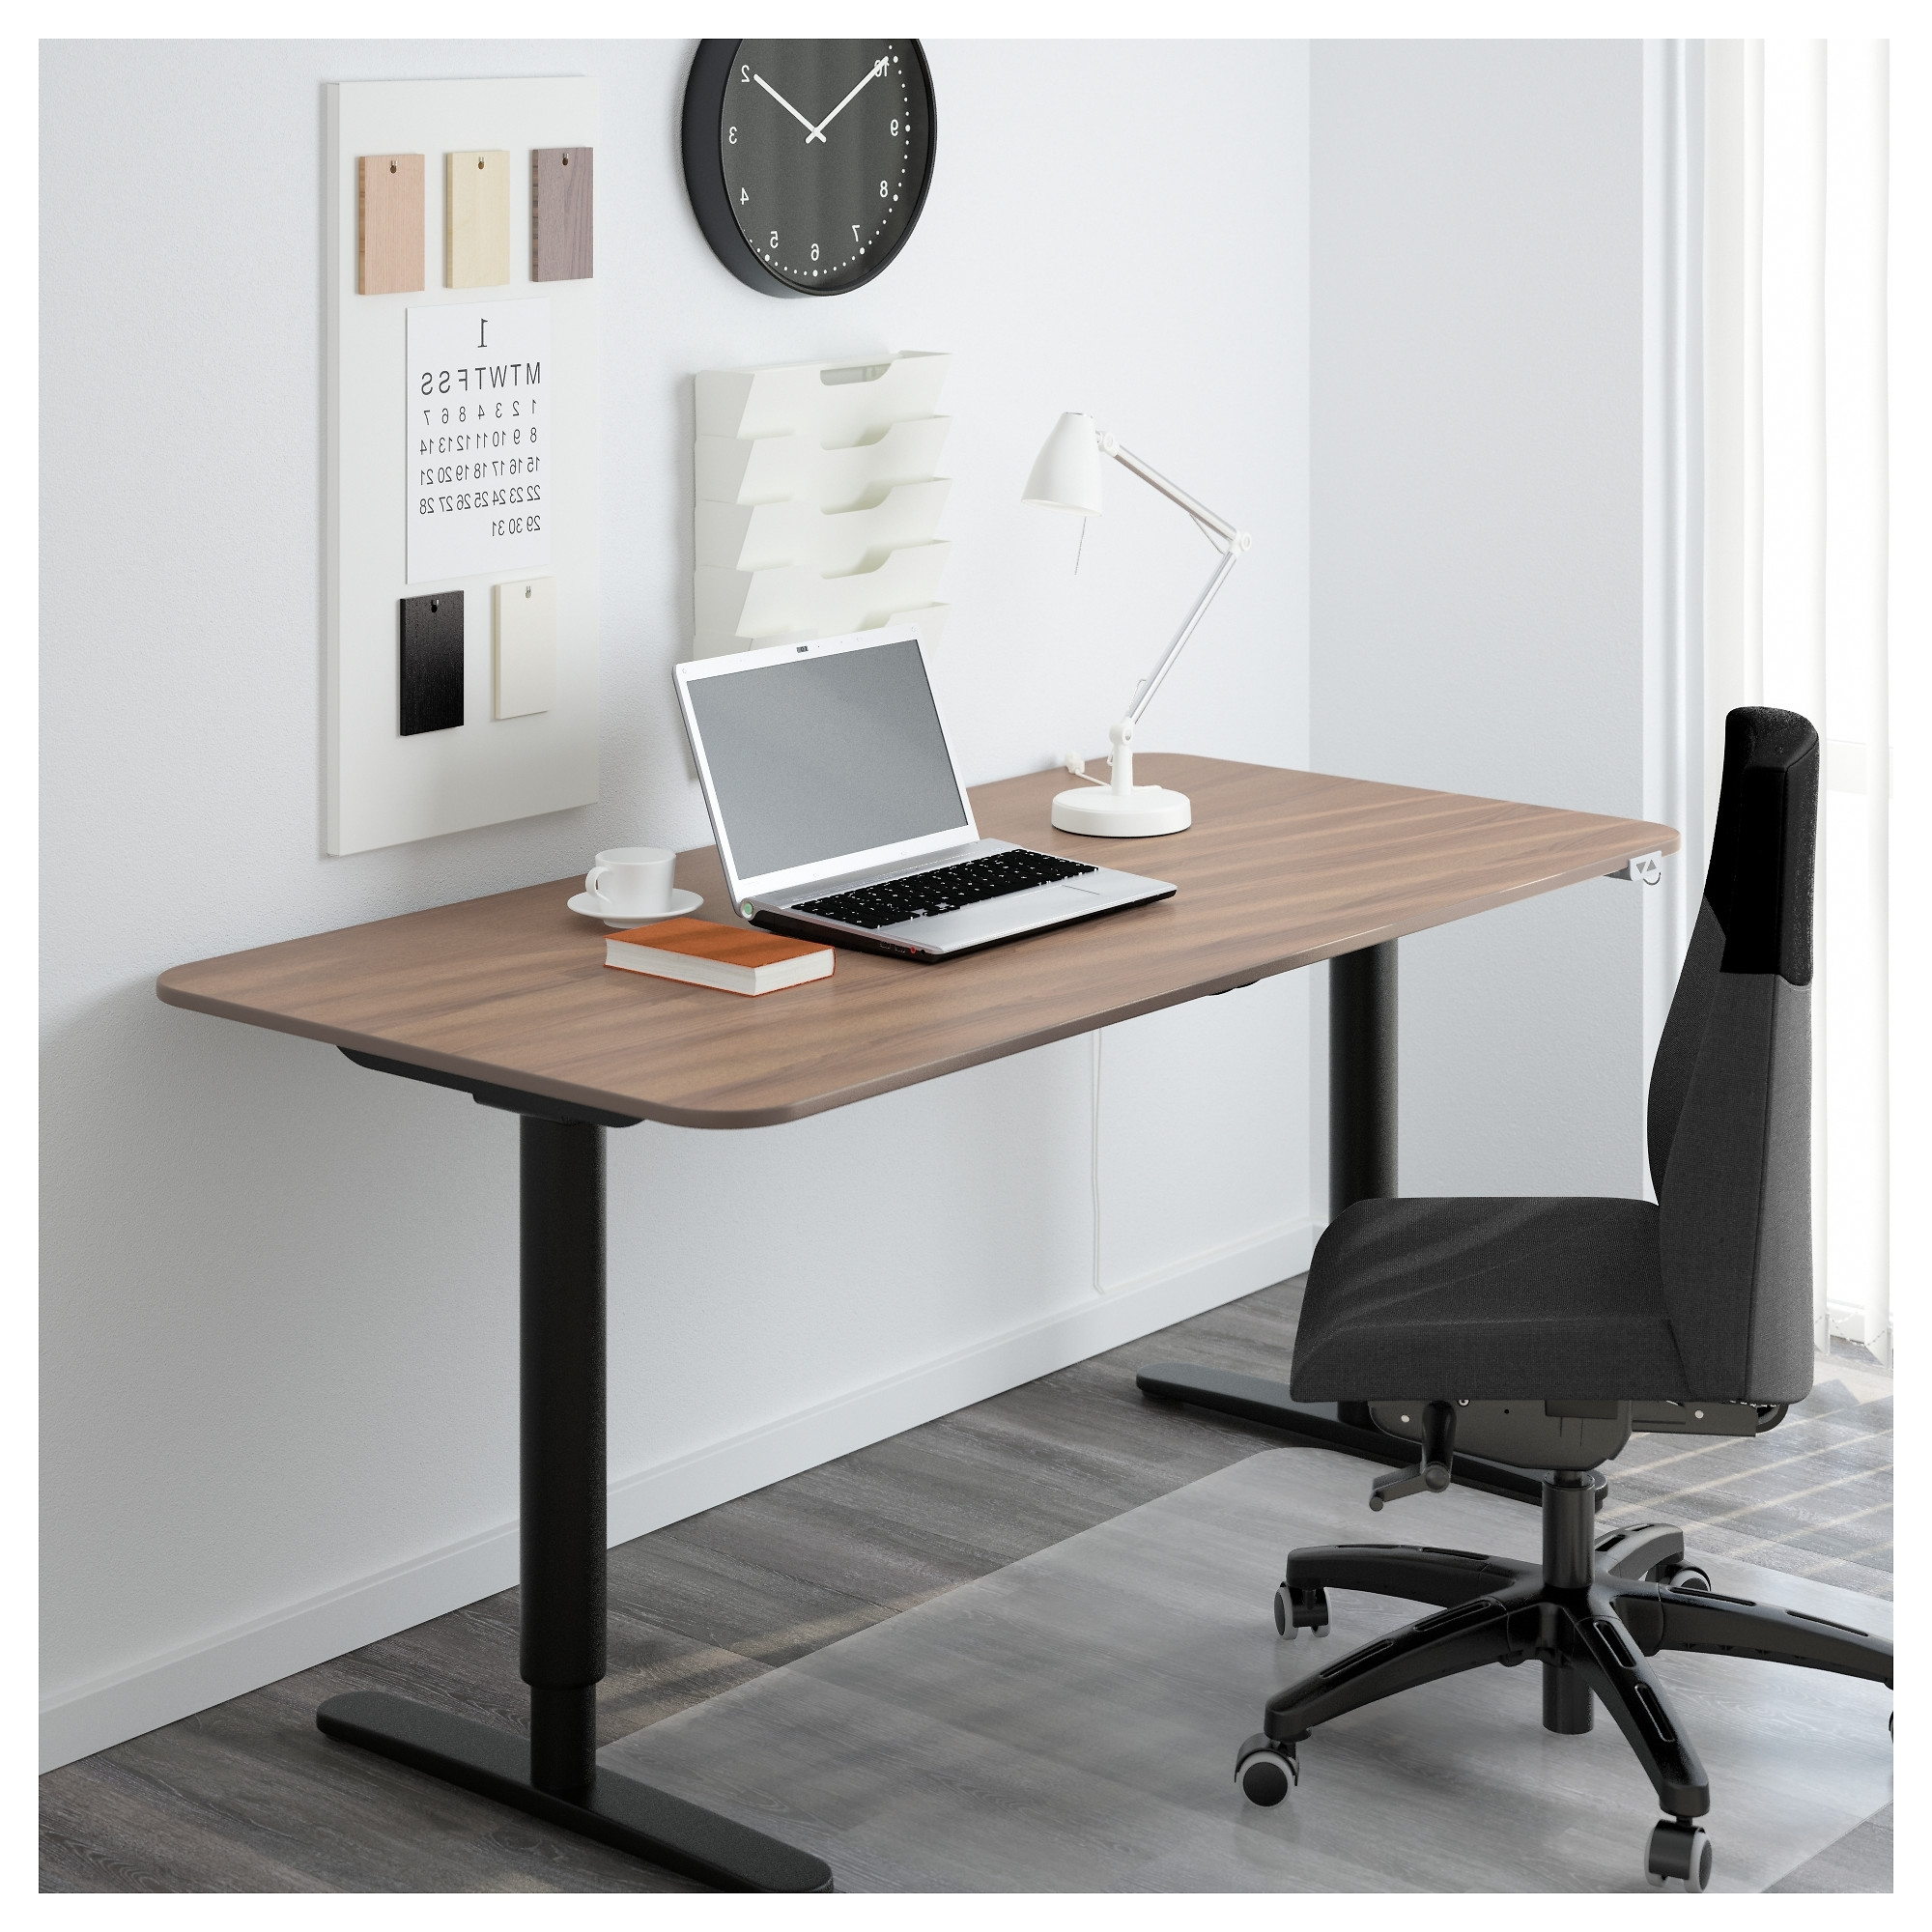 Bekant Desk Sit/stand – Black Brown/white – Ikea For Fashionable Ikea Mn Computer Desks (View 4 of 20)